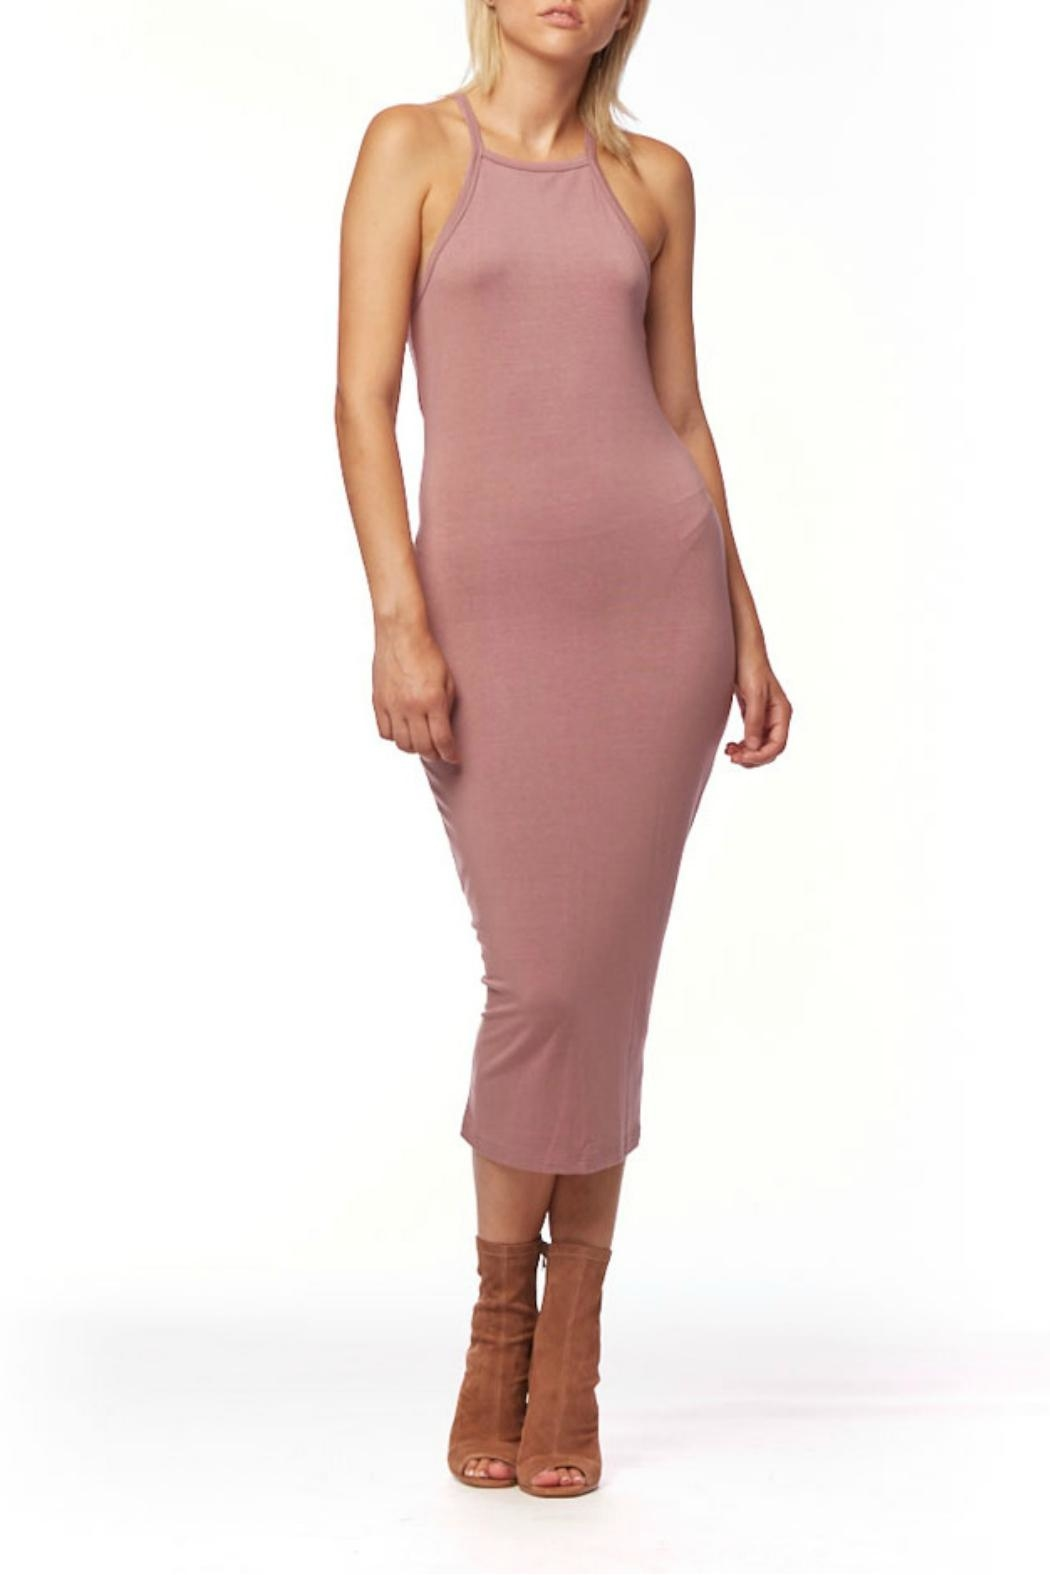 L Fashion Overload Tank Top Midi Dress - Main Image